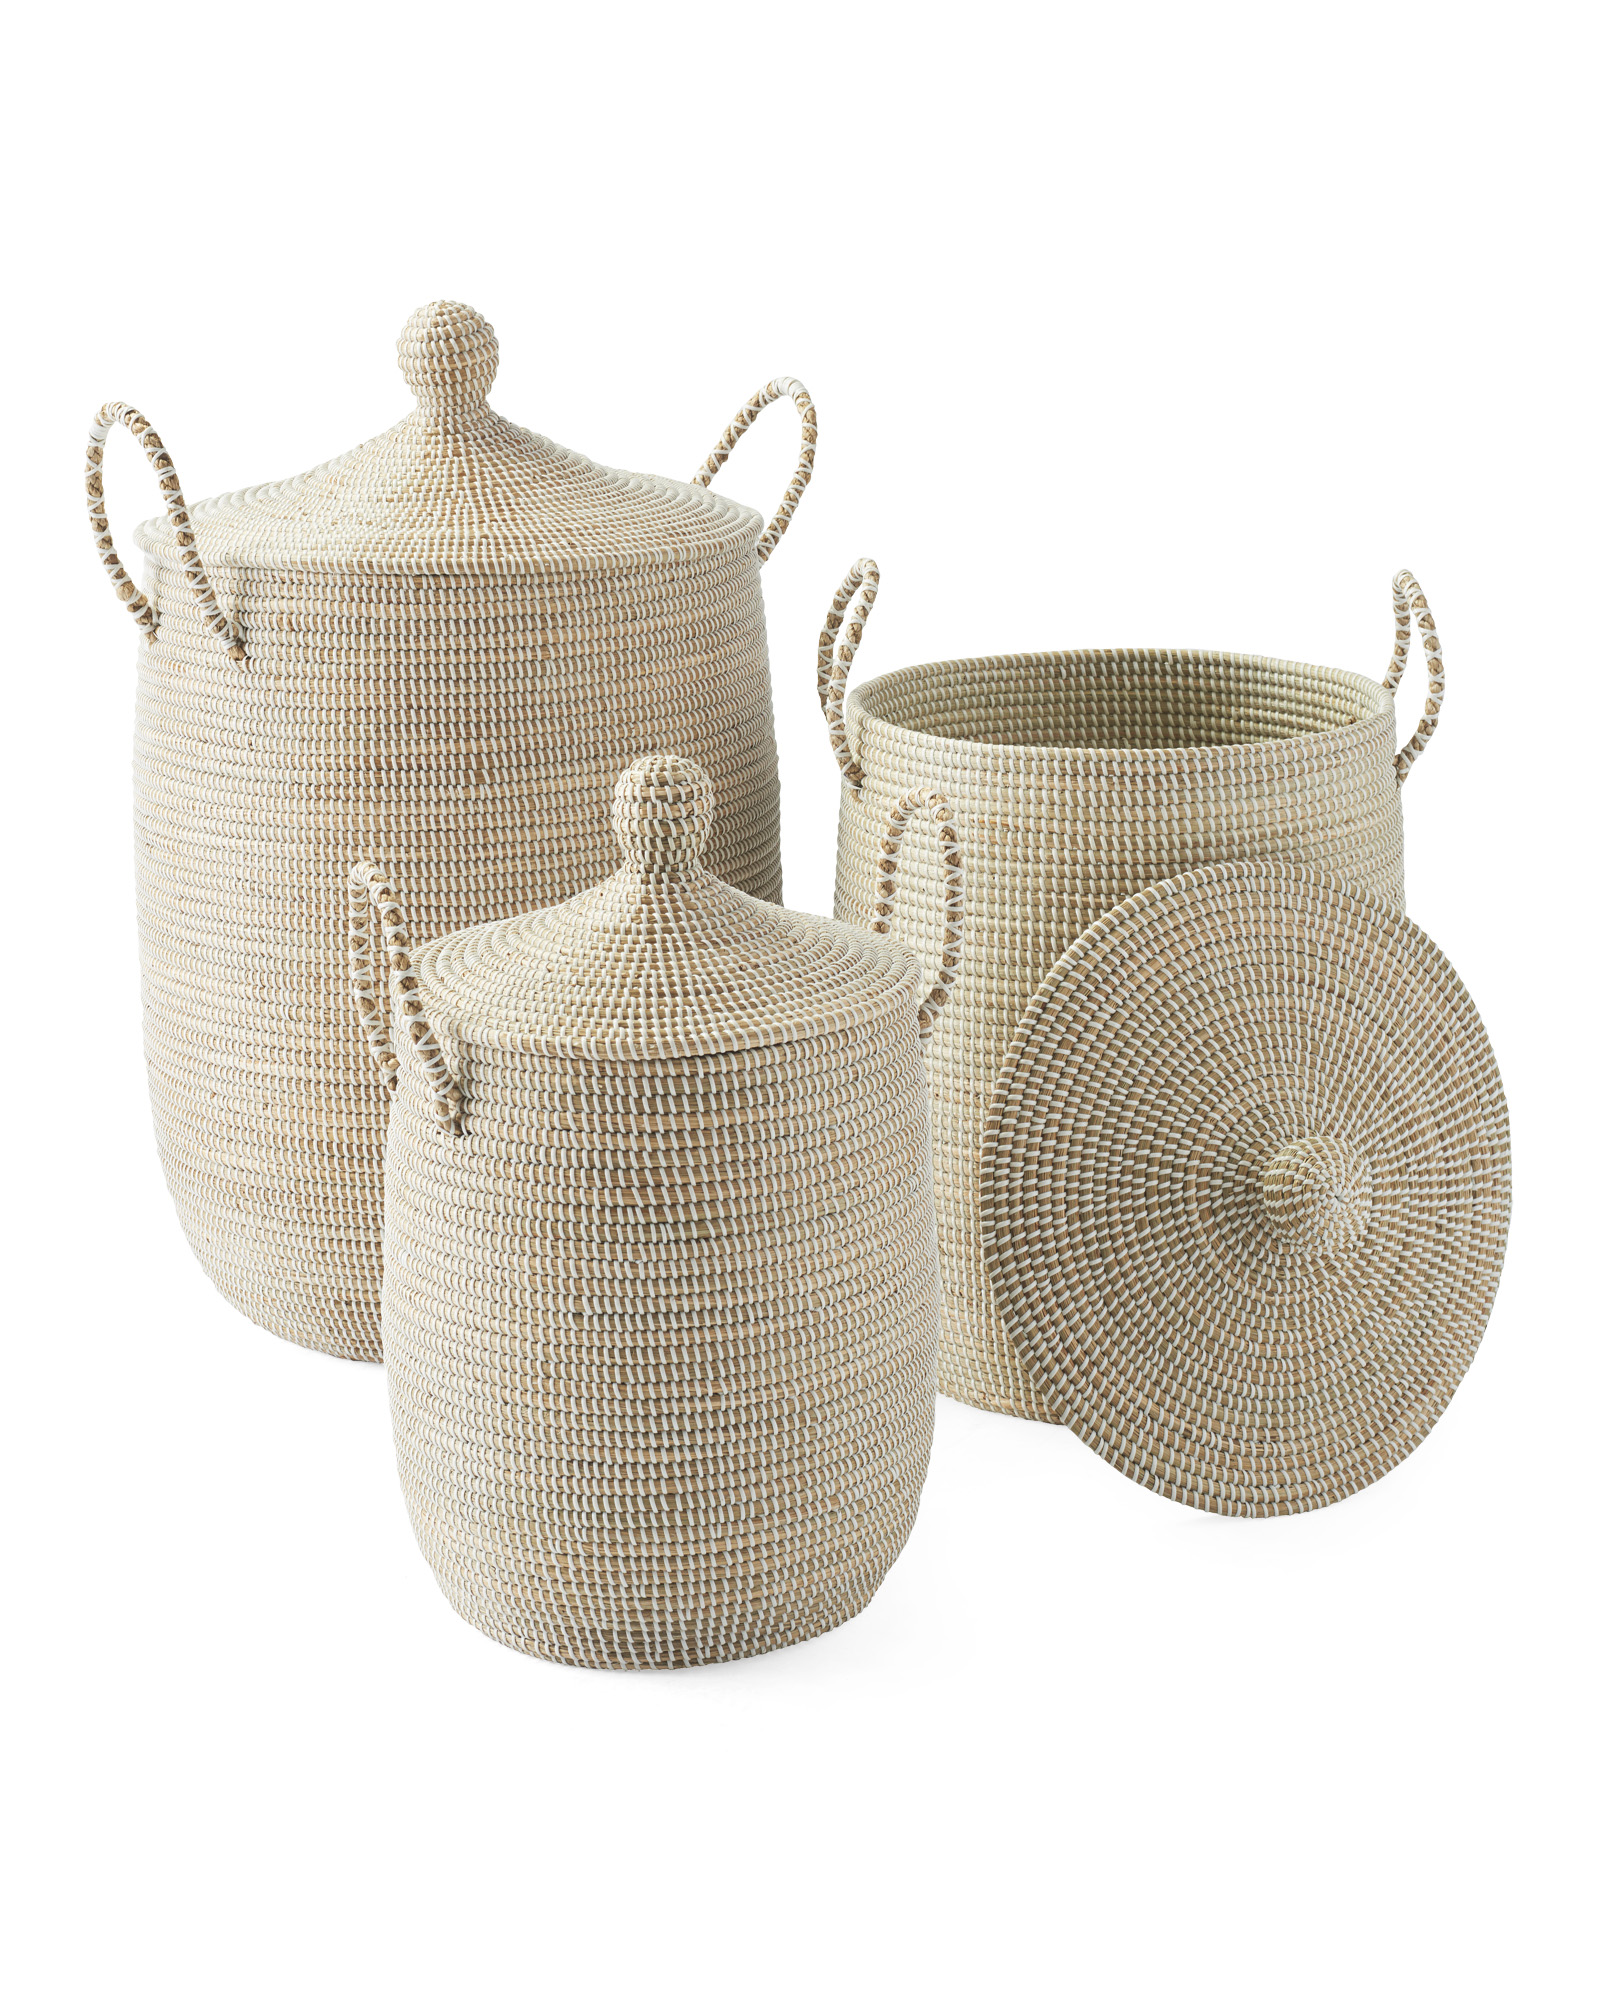 neutral baskets with lid